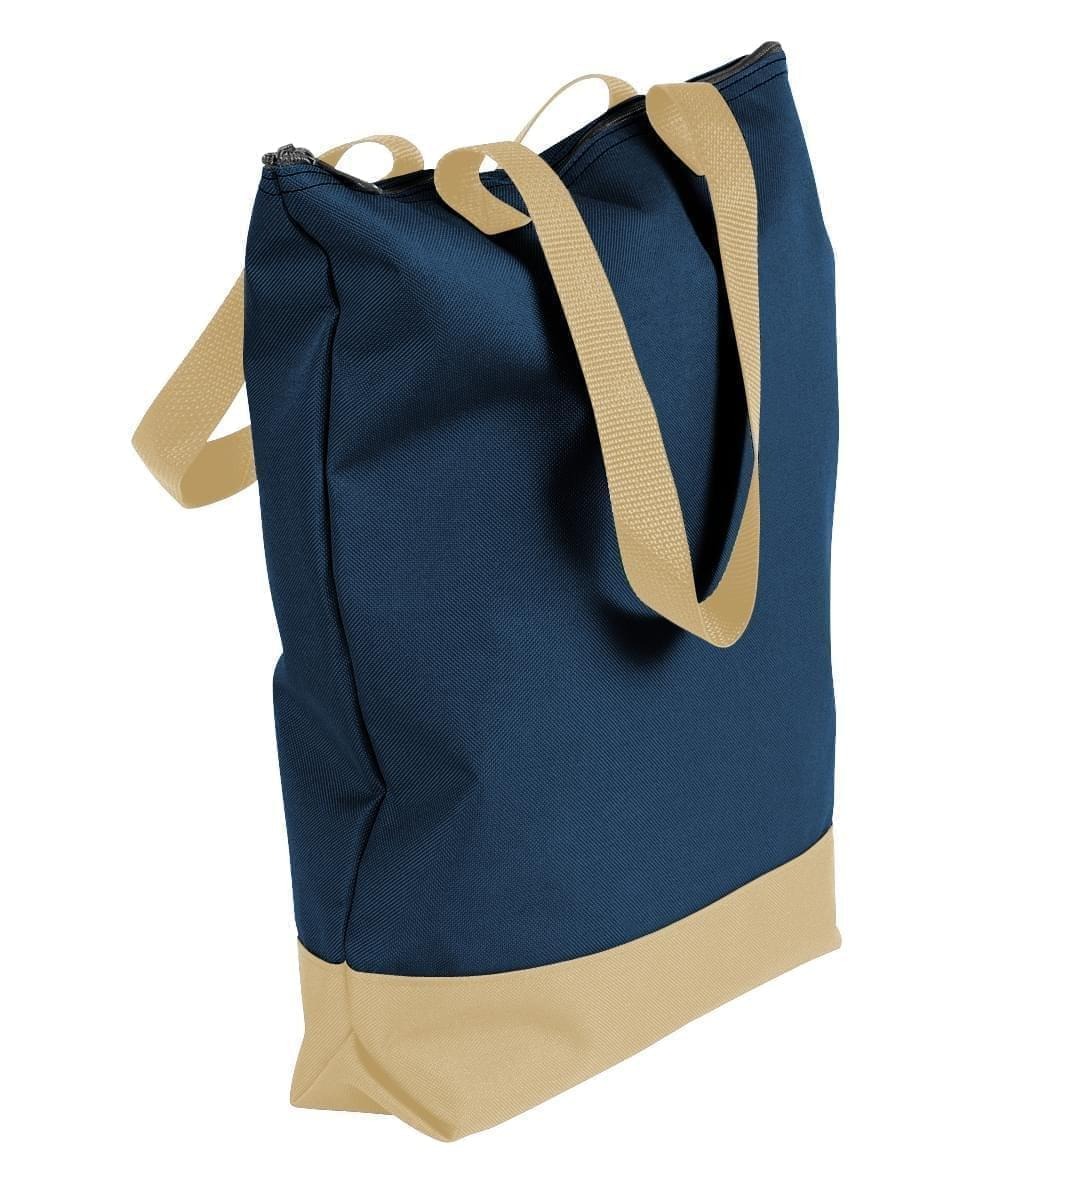 USA Made Poly Notebook Tote Bags, Navy-Khaki, 1AAMX1UAWX